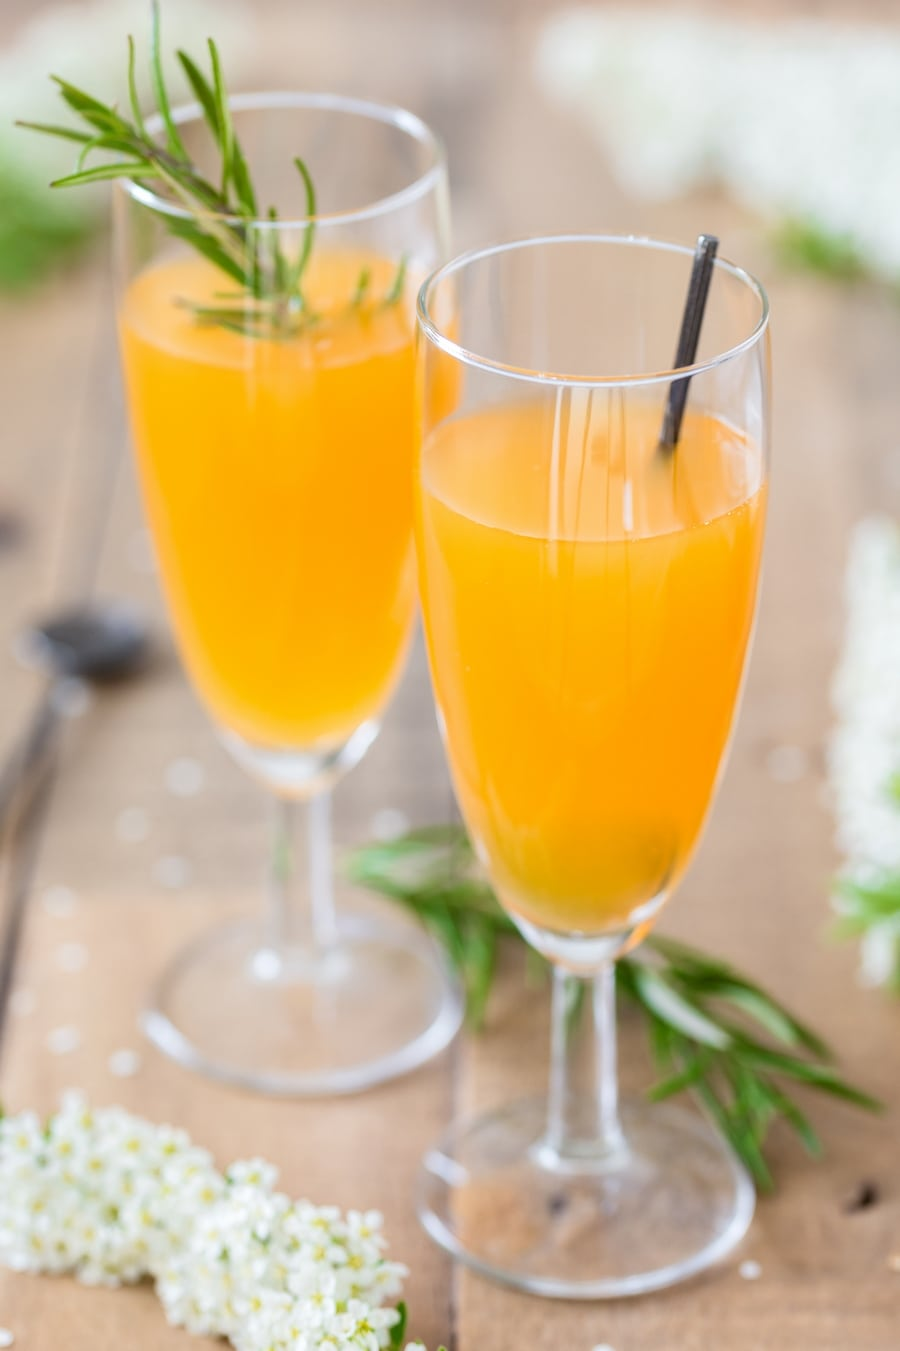 Champagne glasses with mango cider cocktail.